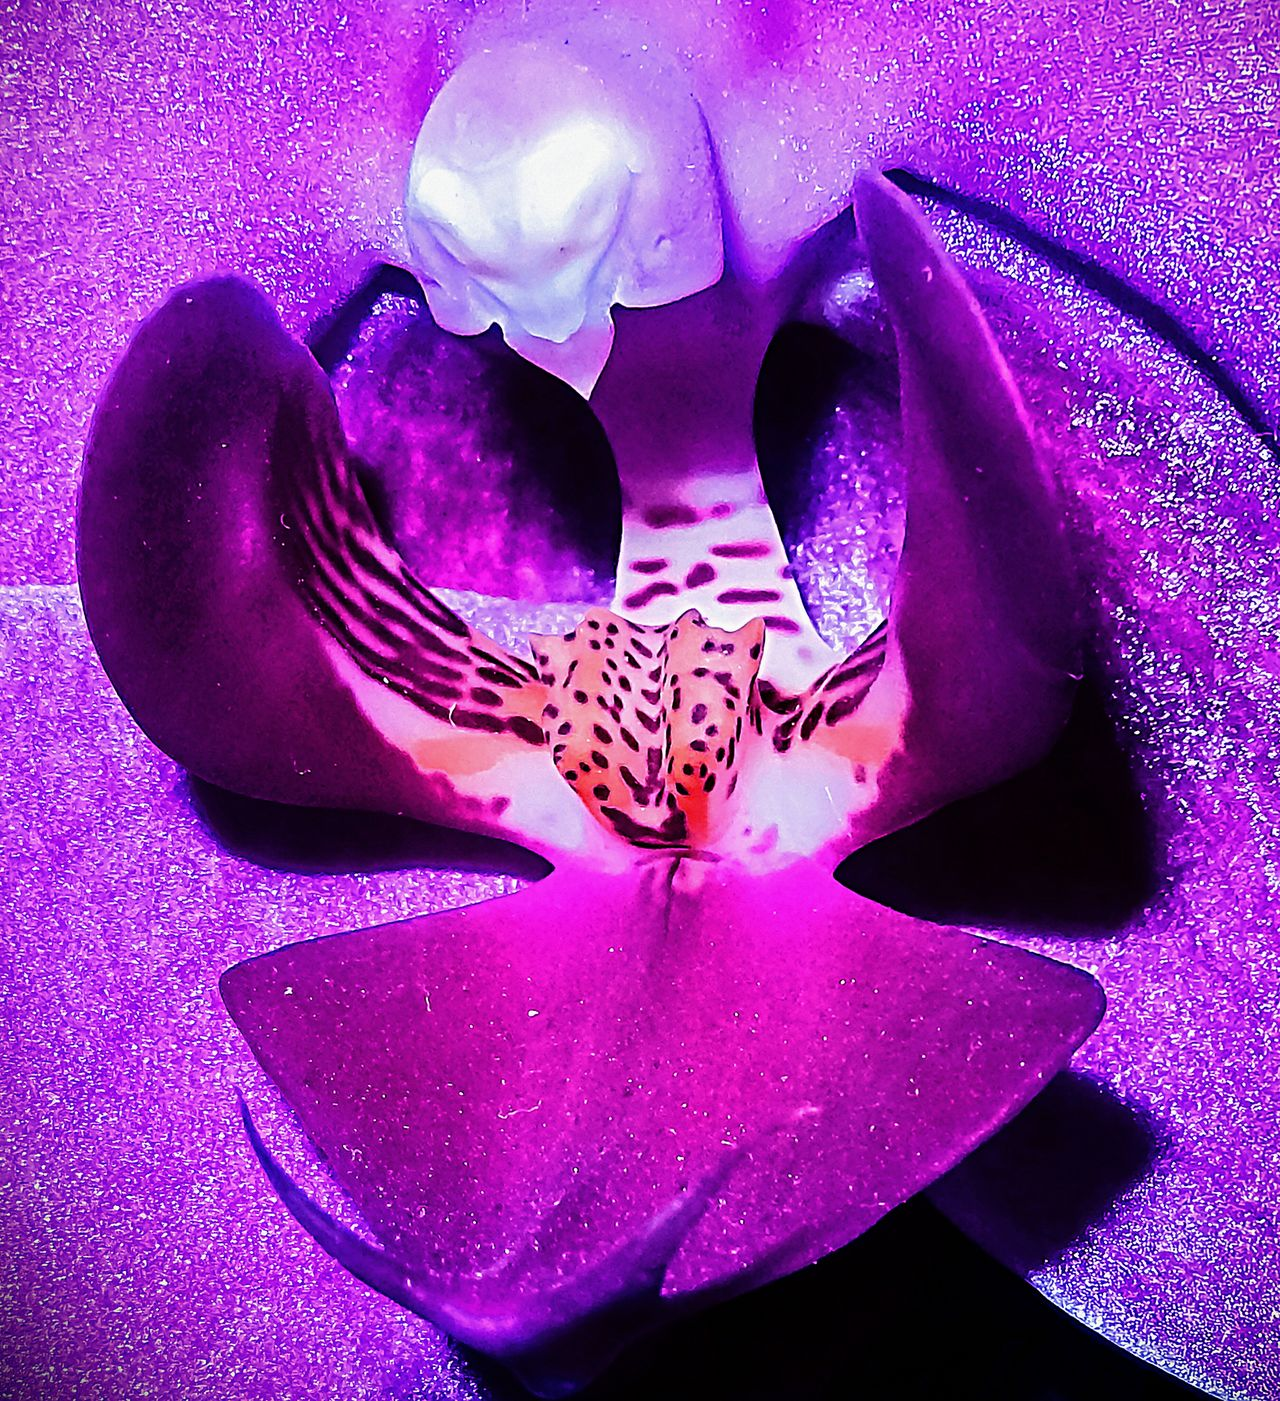 Lotus Alien Flower Purple Abstract Flower Head Close-up Biology Nature Beauty In Nature Samsungphotography Plant EyeEm Nature Lover Klique Klique Hello World Growth Maximum Edit Creativity Abstracts Lotus Lotus Flower Macro_flower Floral Check This Out